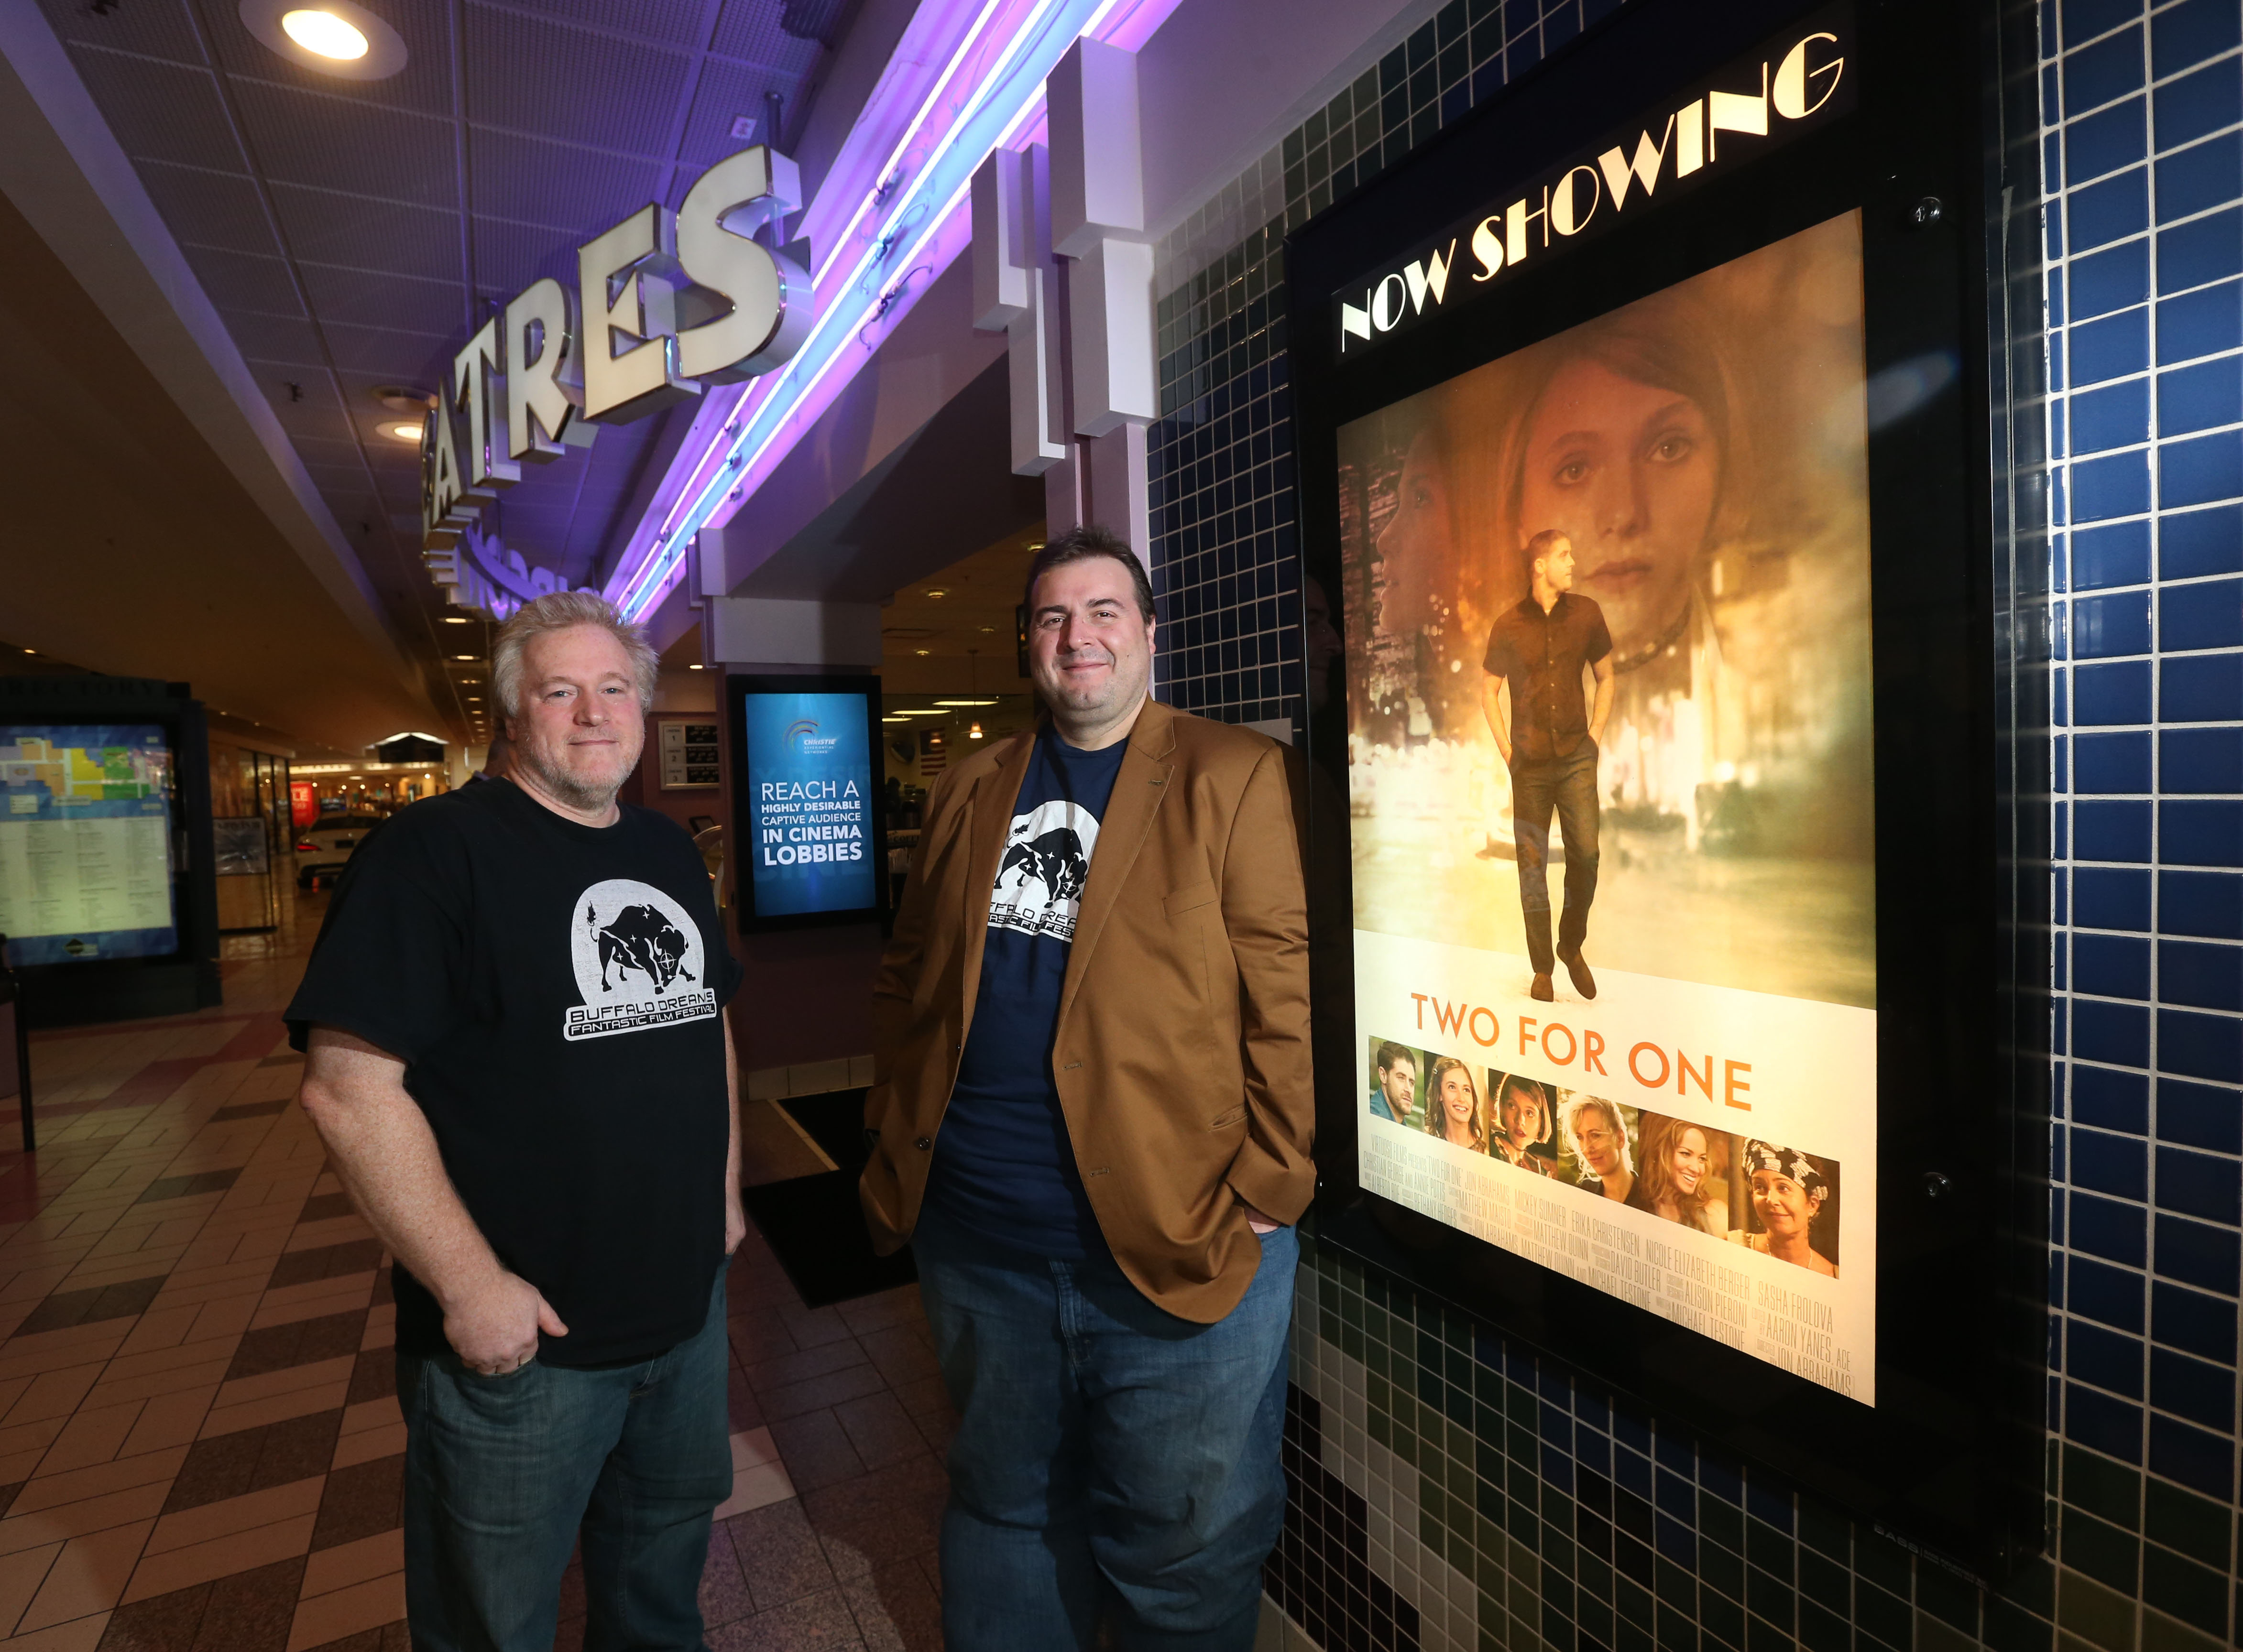 Greg Lamberson, left, and Chris Scioli are founders and co-directors of the Buffalo Dreams Fantastic Film Festival. The event includes a special advance screening of the film 'Two For One' which was shot in Buffalo. (Sharon Cantillon/Buffalo News)